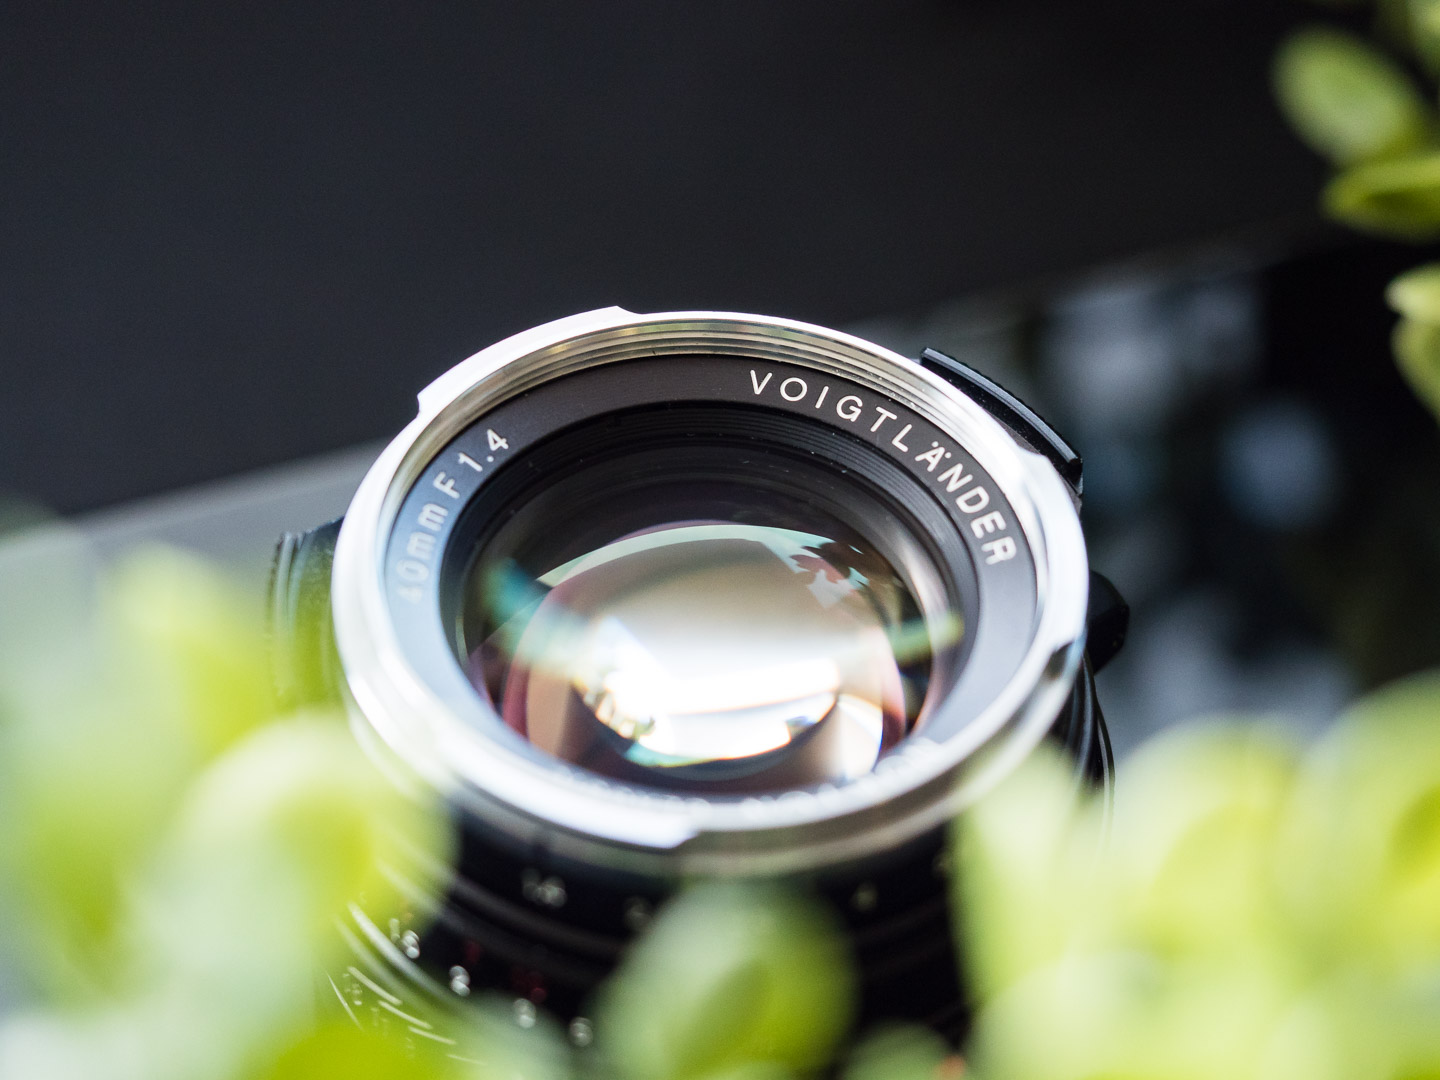 That Voigtlander Nokton 40/1.4 review